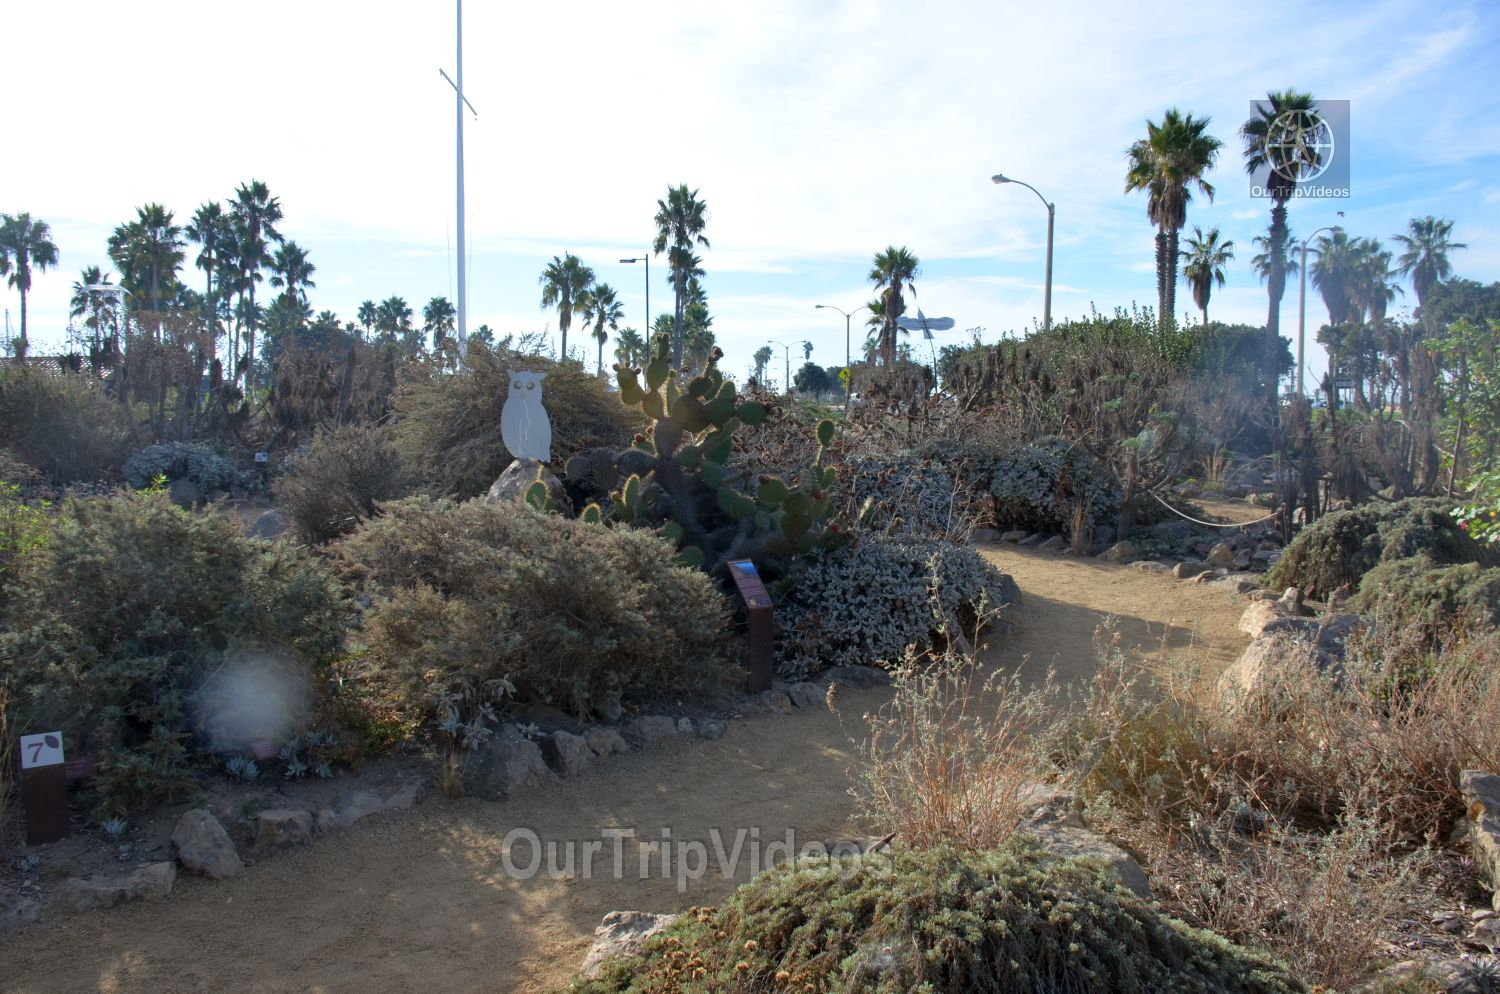 The Robert JL Visitor Center and Harbor cove beach, Ventura, CA, USA - Picture 7 of 25